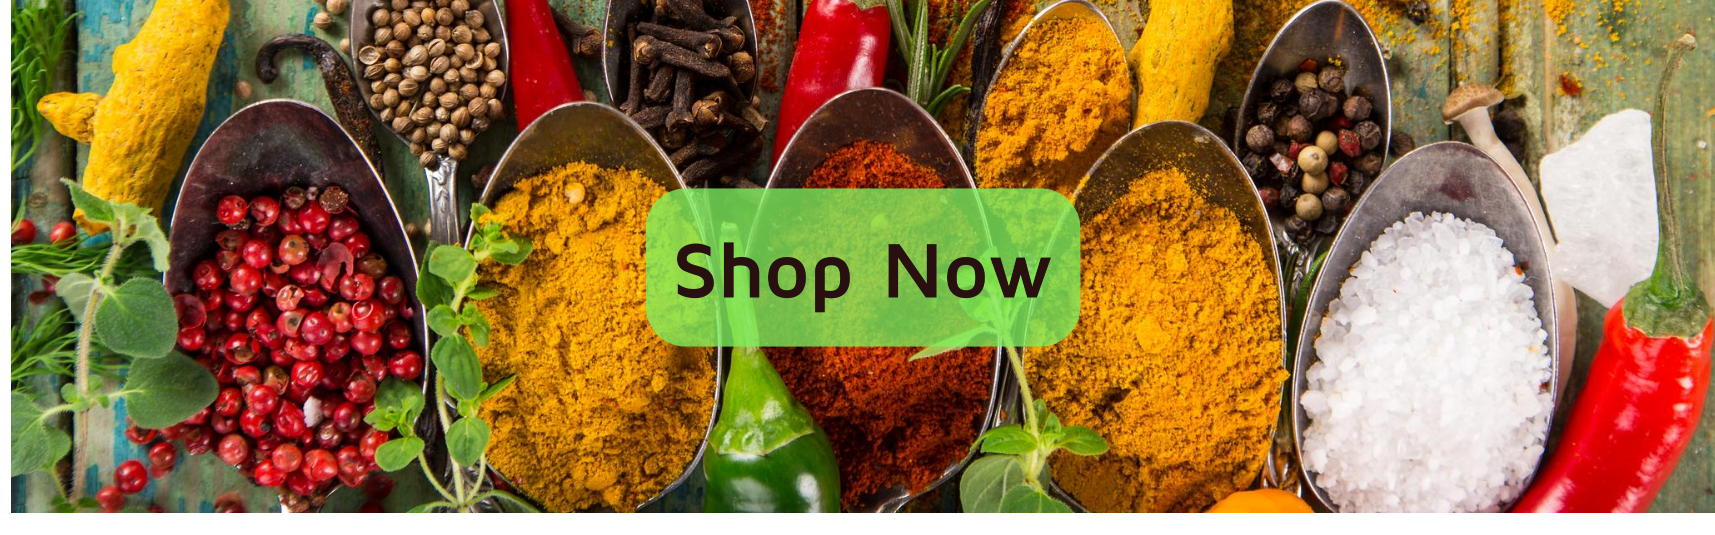 Nature Kitchen Shop Now home page Banner